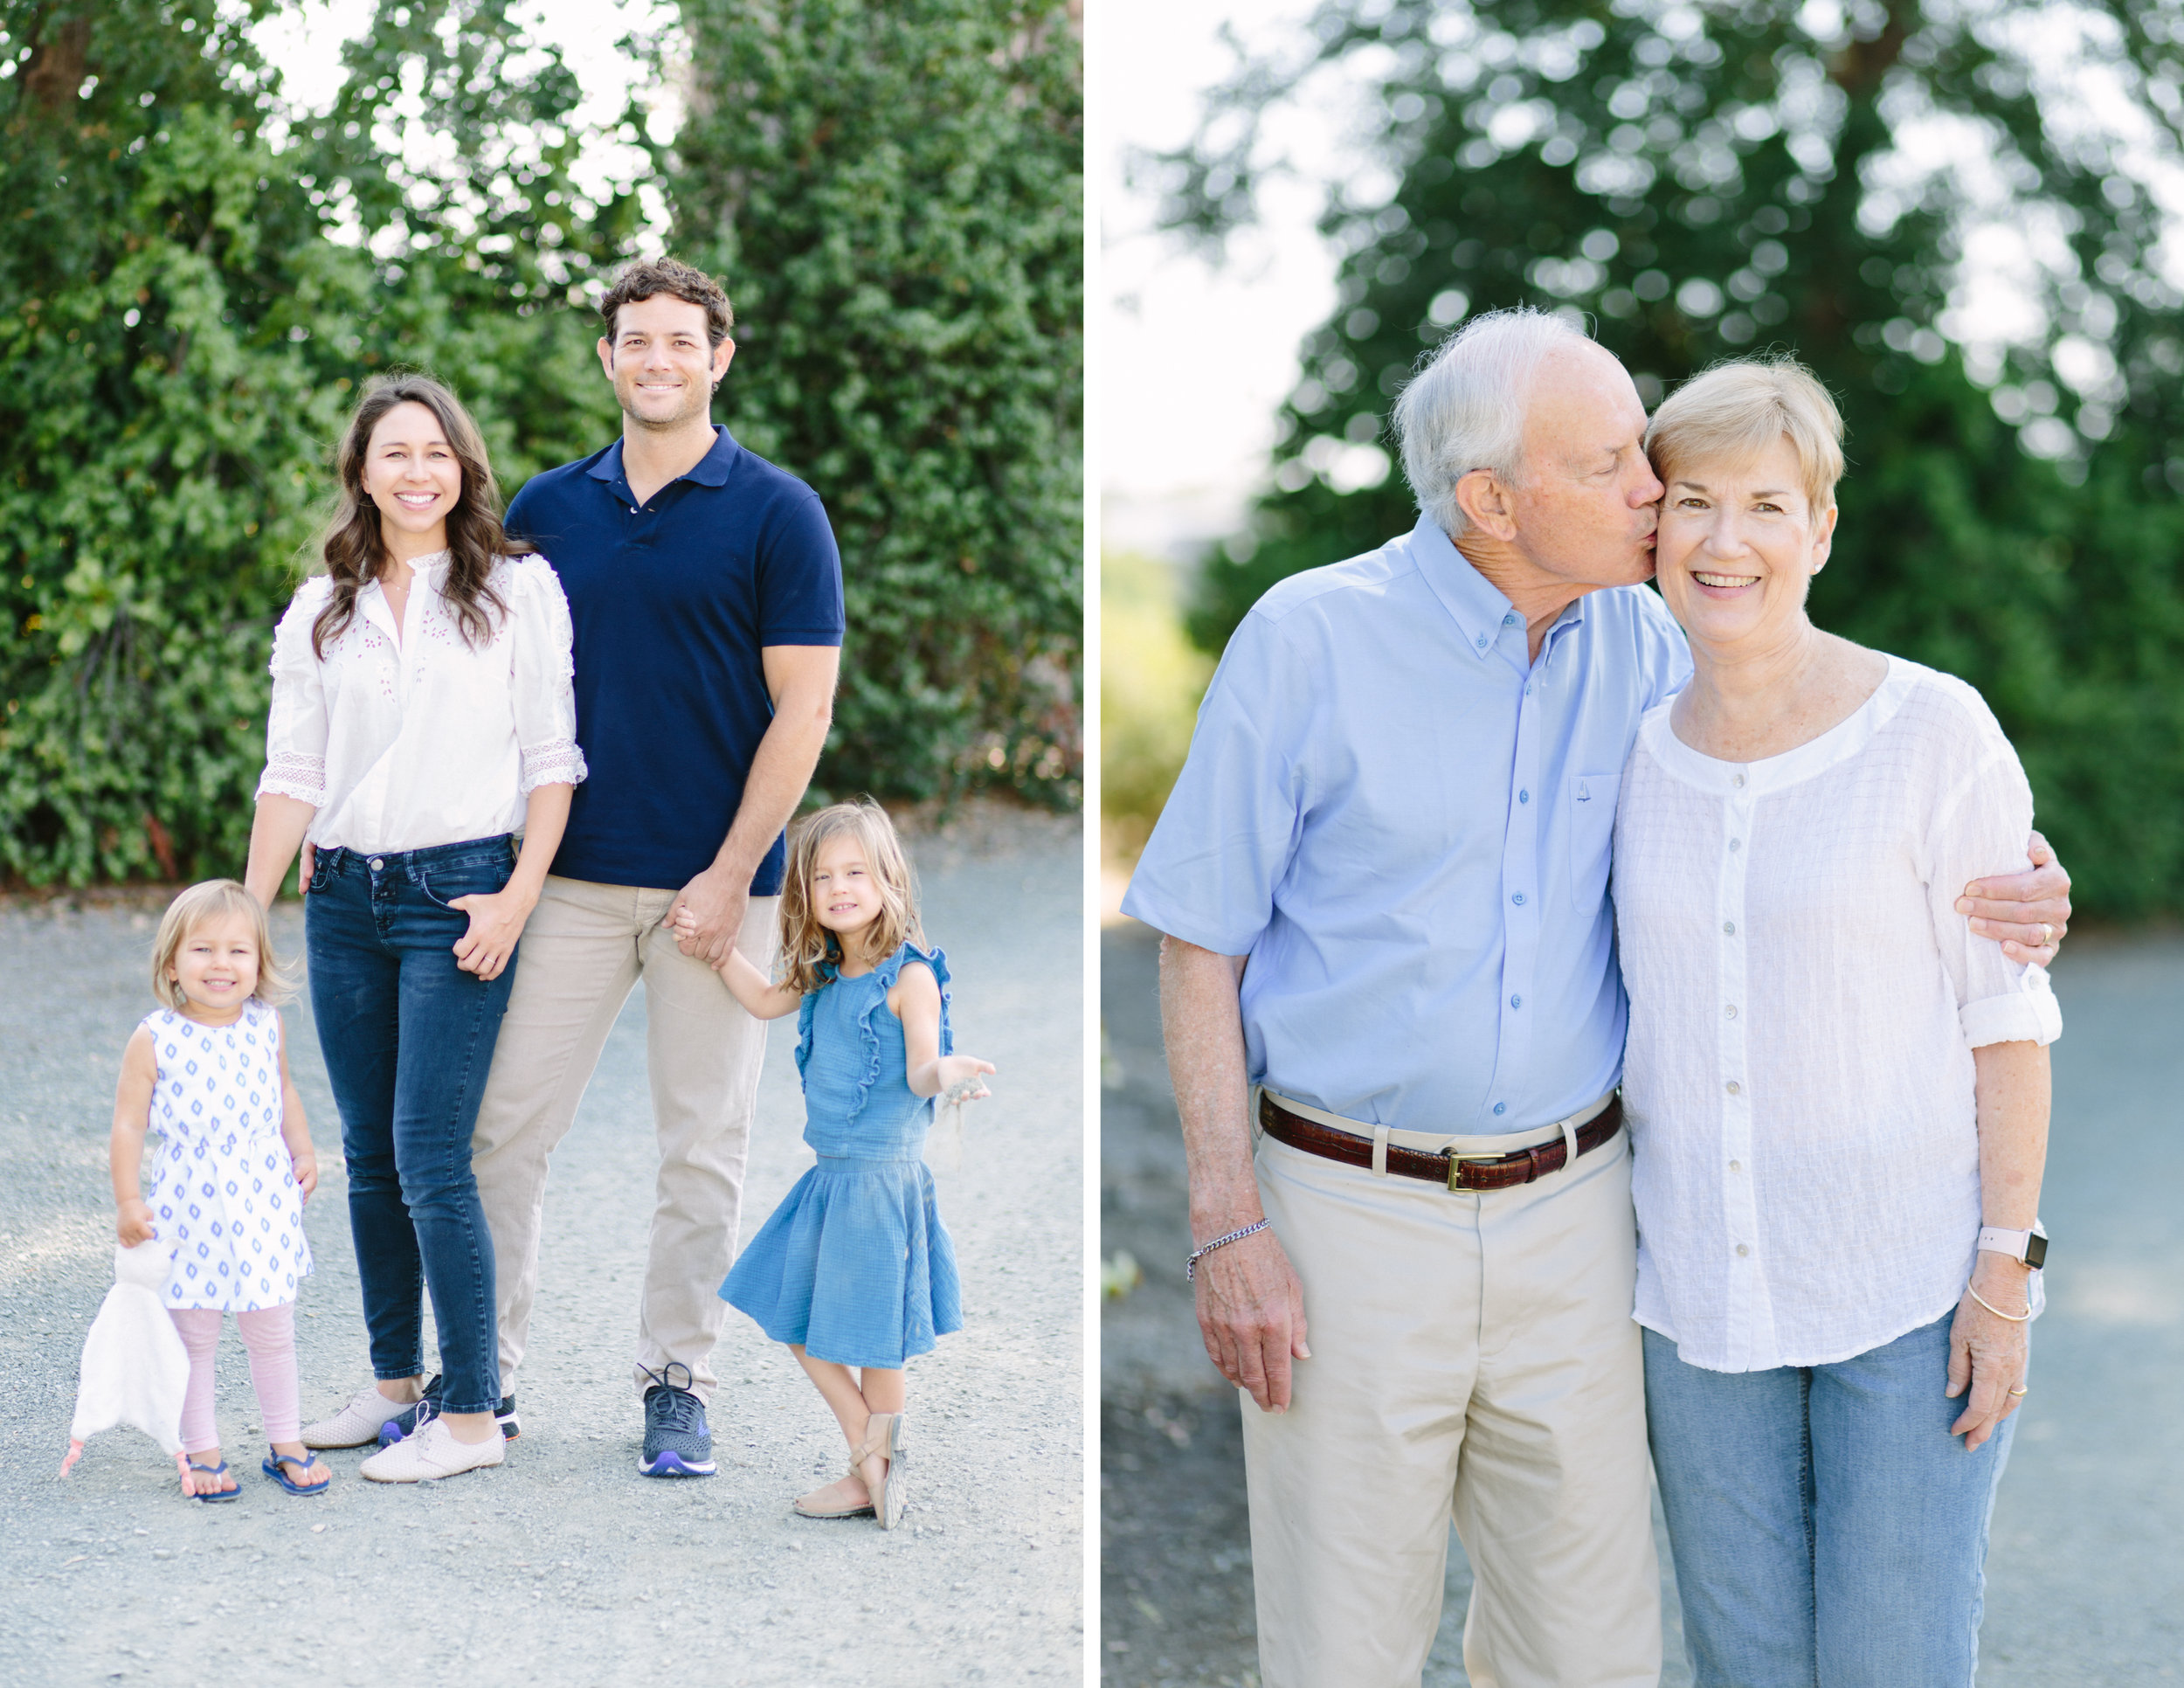 napa valley family portraits 4.jpg